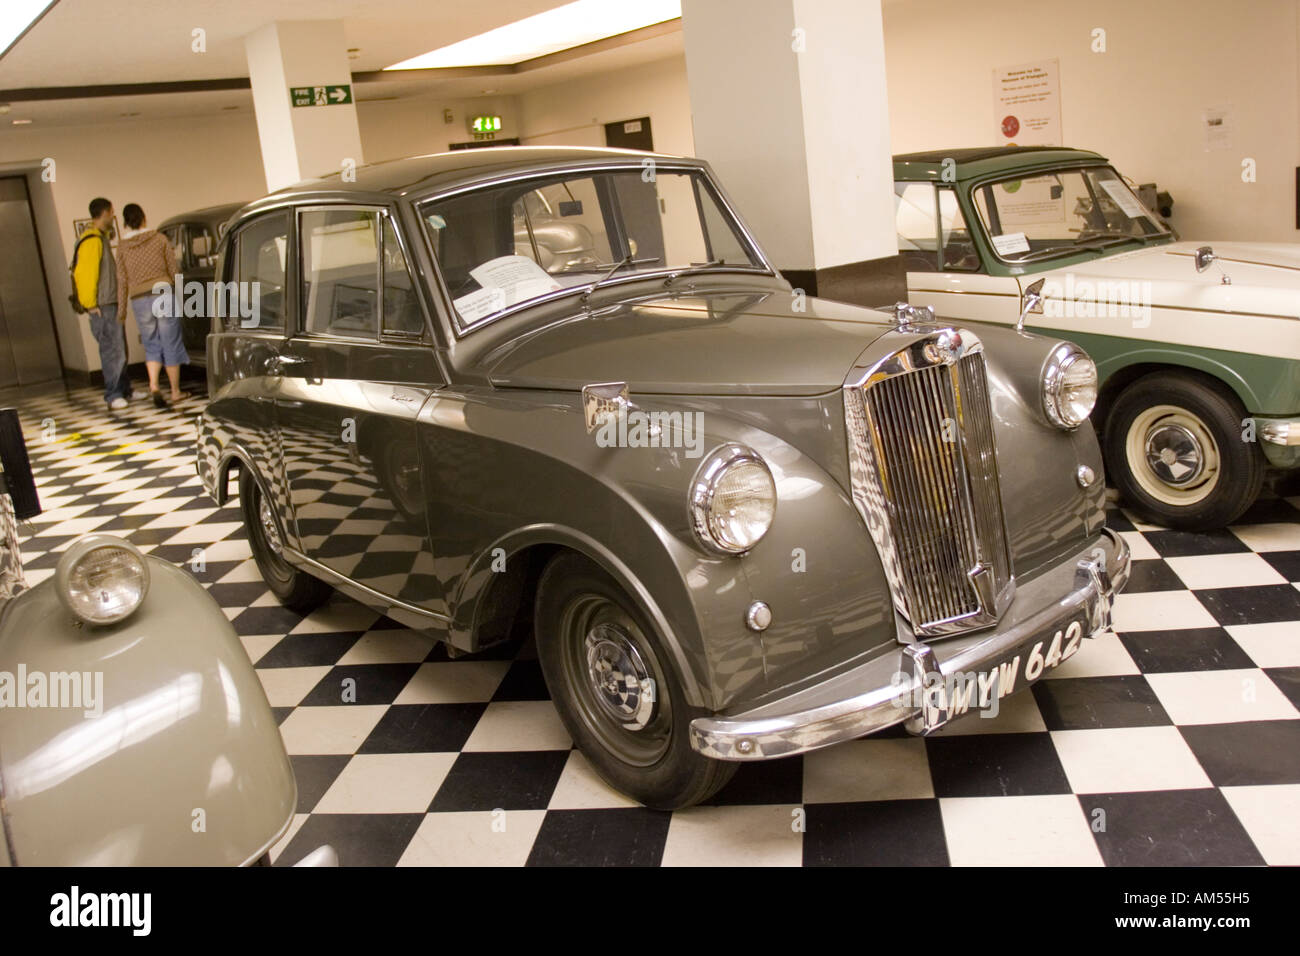 Beautiful Mayflower Car Shipping #3: Stock Photo - Triumph Mayflower Car In The Museum Of Transport Glasgow  Scotland UK